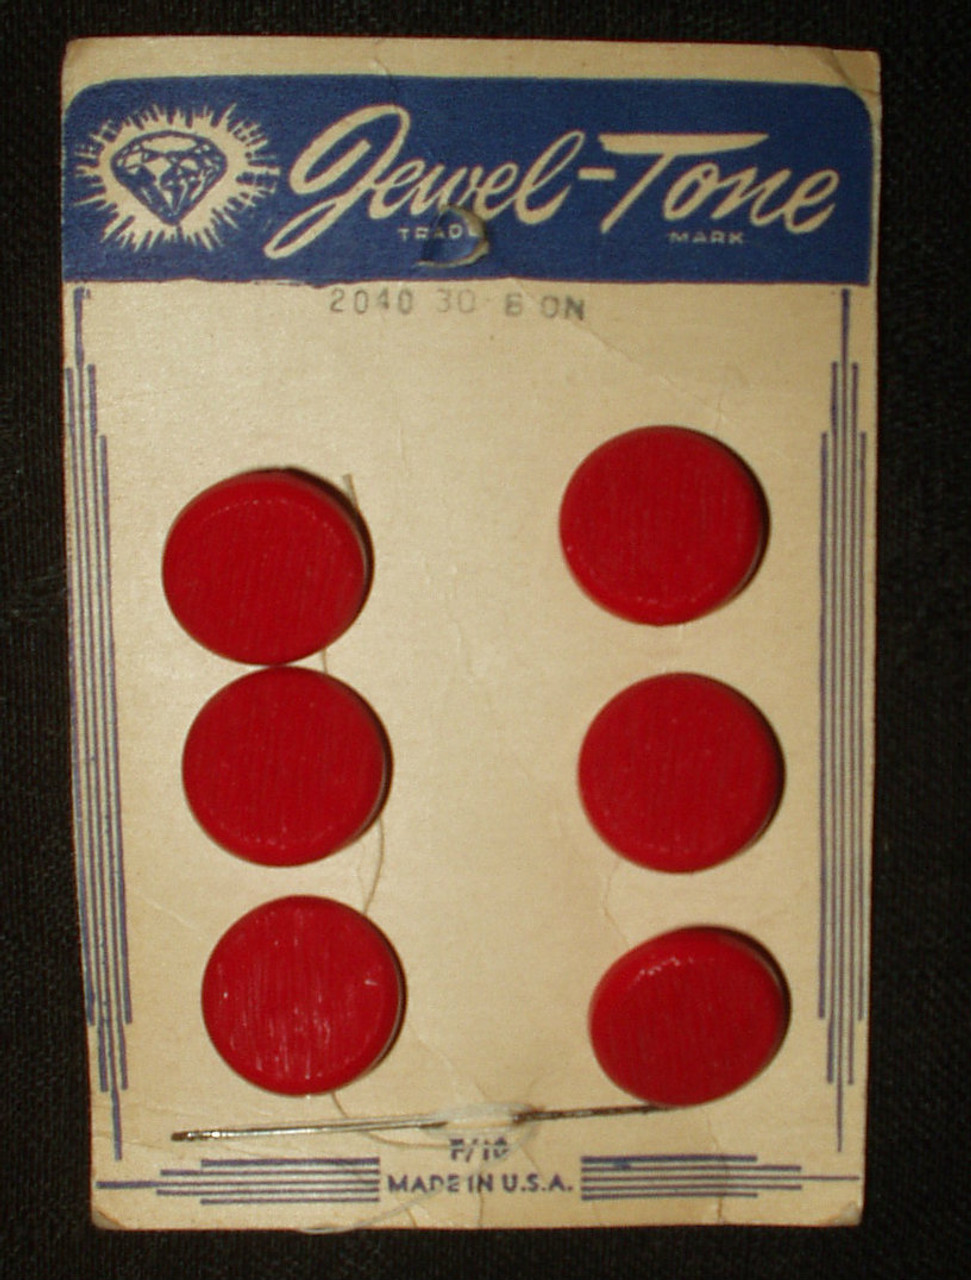 Vintage Card Jewel Tone Dress Buttons Red Plastic 1940 1950